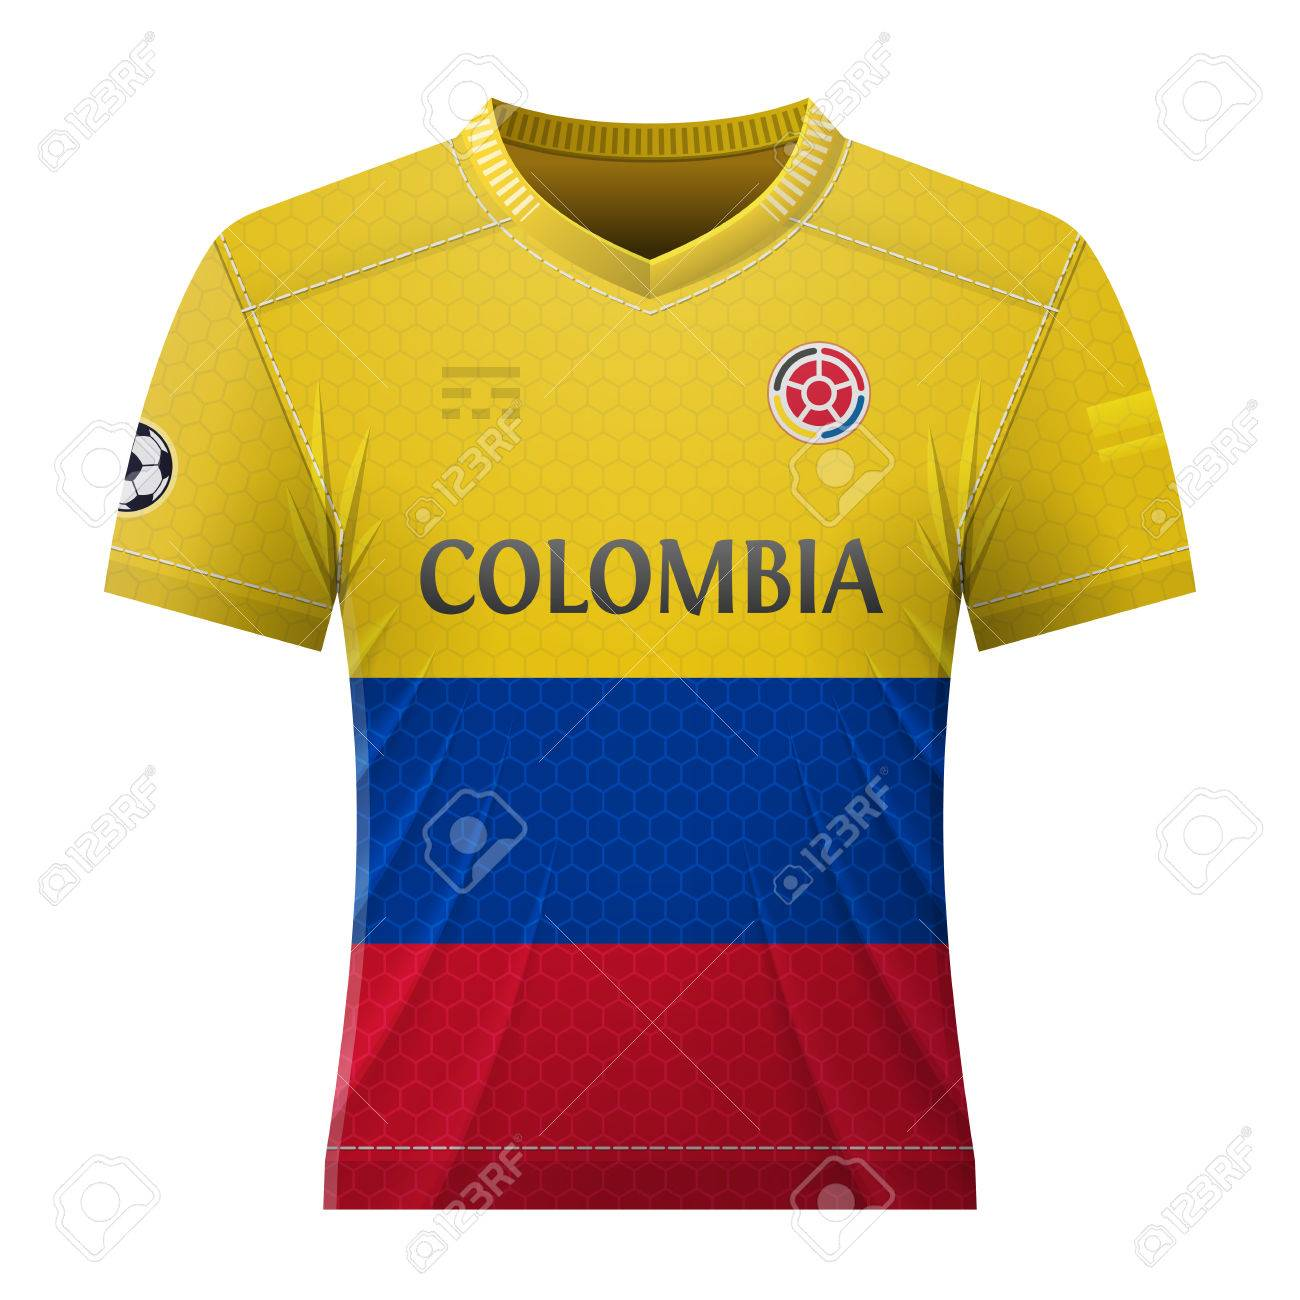 new arrival e0b2c 82ffe Soccer shirt in colors of colombian flag. National jersey for..